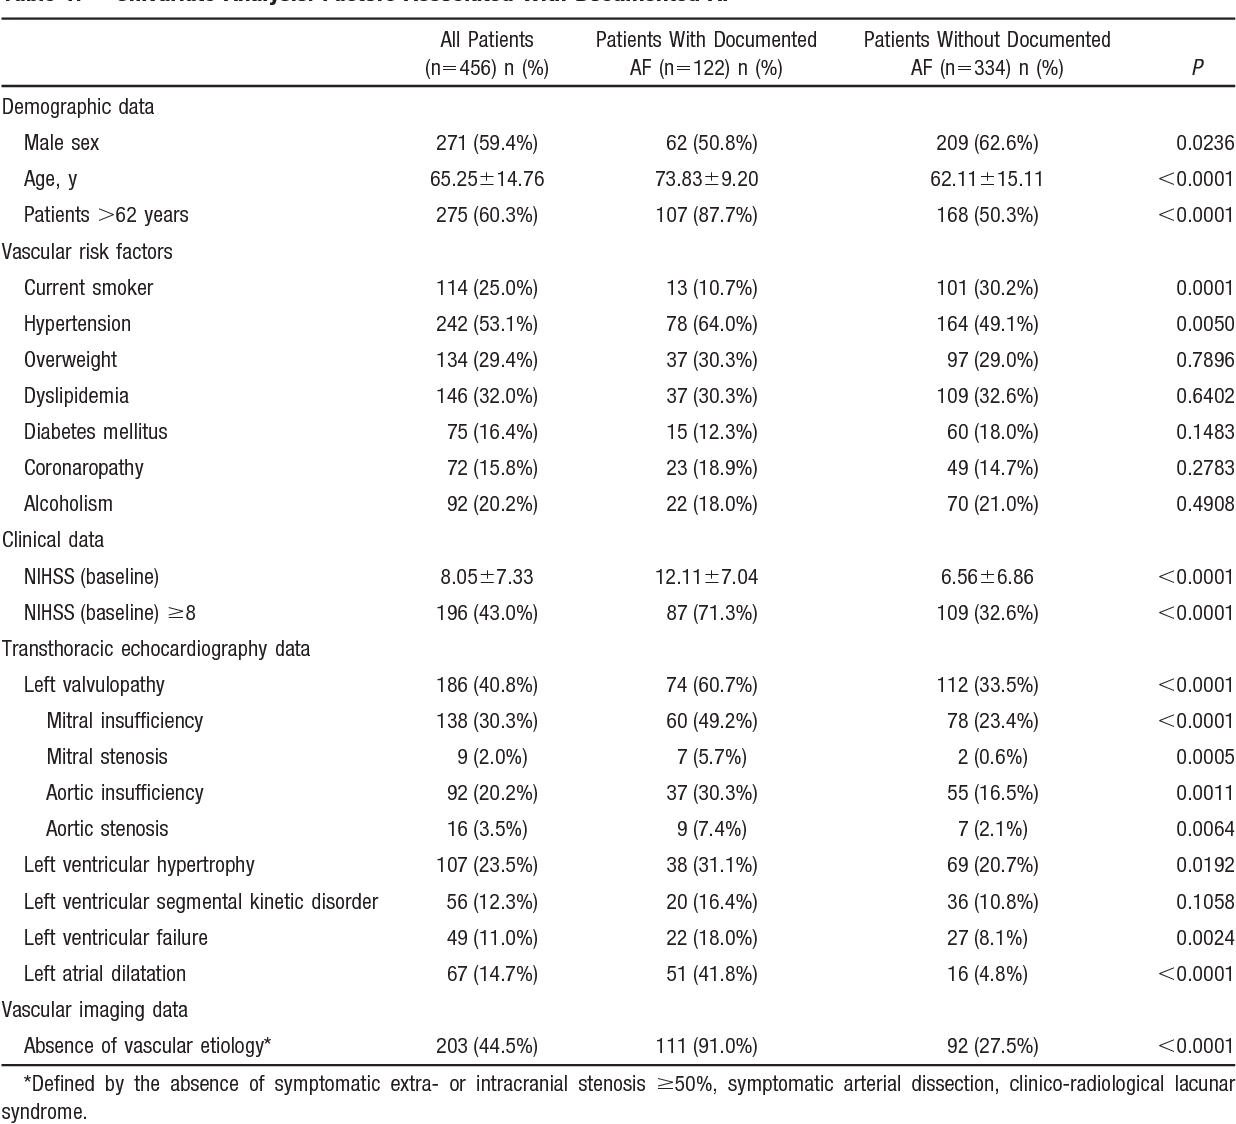 Table 1. Univariate Analysis: Factors Associated With Documented AF